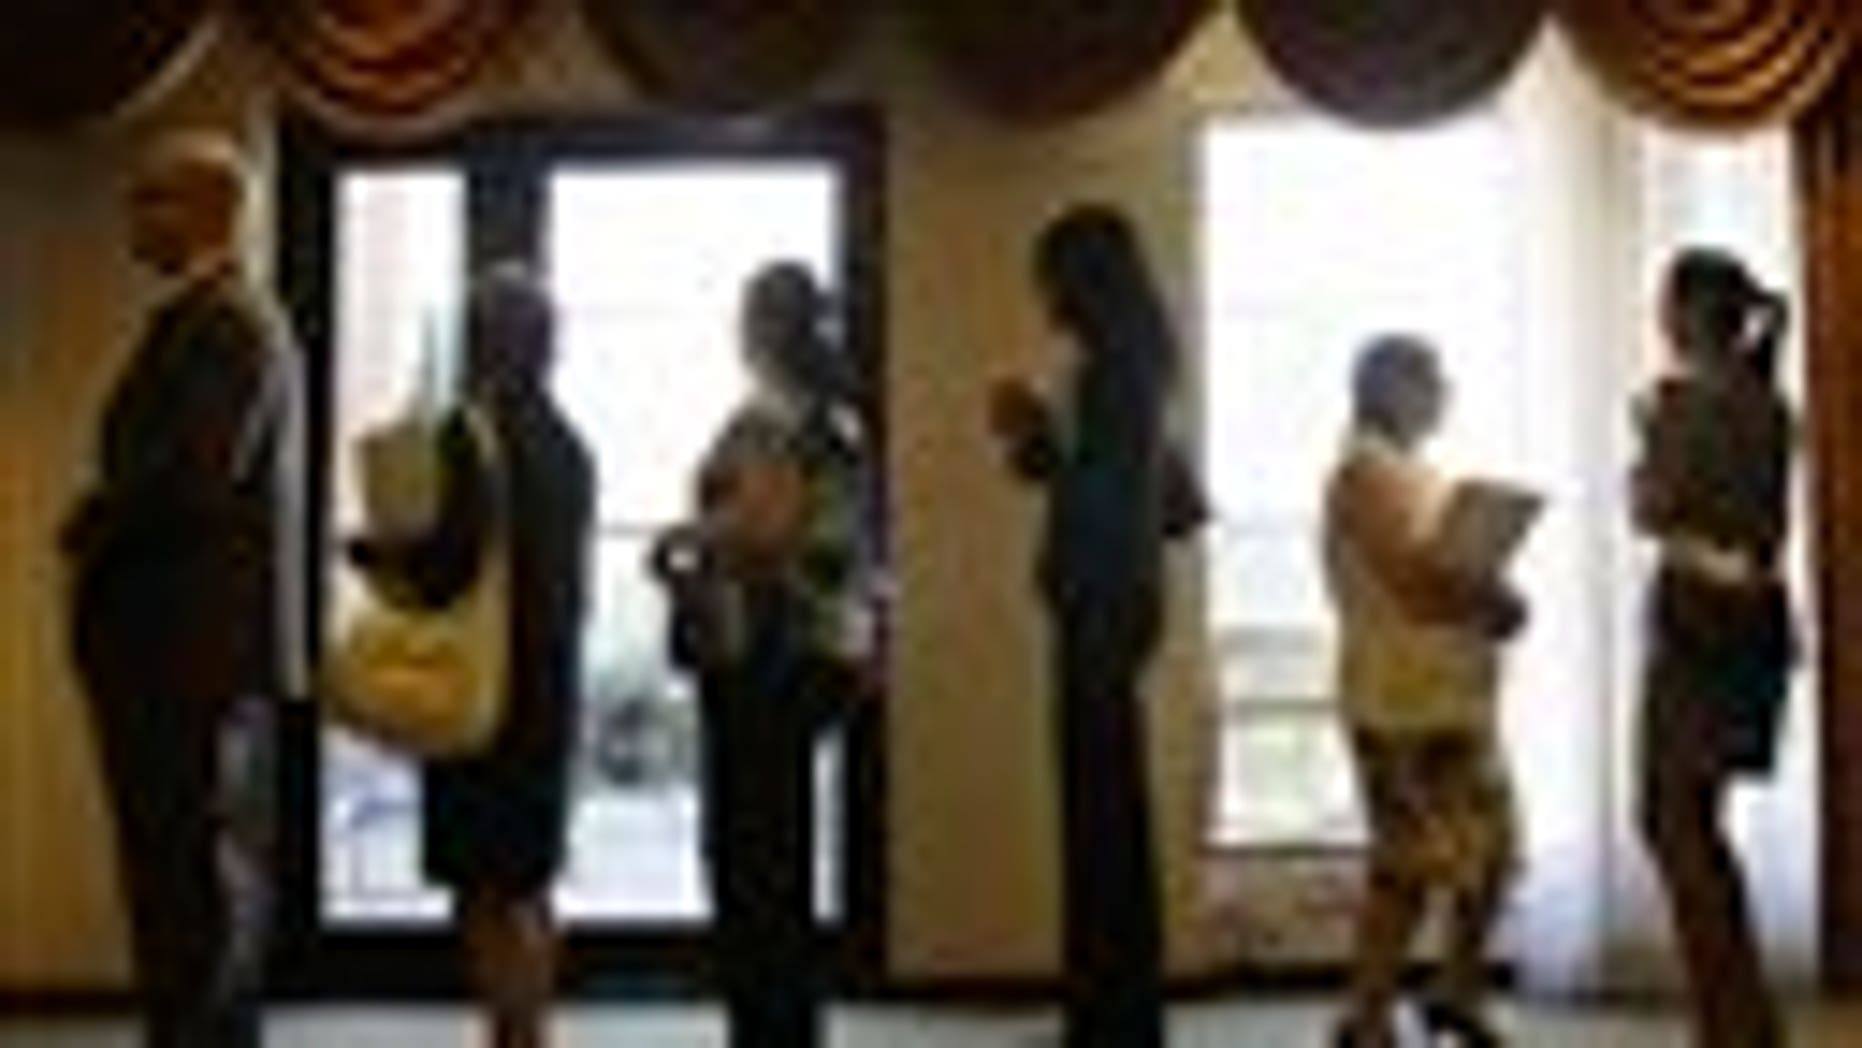 In this Aug. 16, 2011 photo, job seekers stand in line to enter a job fair, in Independence, Ohio.  The number of people applying for unemployment benefits rose back above 400,000 last week. Still, the average number of applications over the past four weeks fell to its lowest level since mid-April. That suggests the job market may be improving. (AP Photo/Tony Dejak)